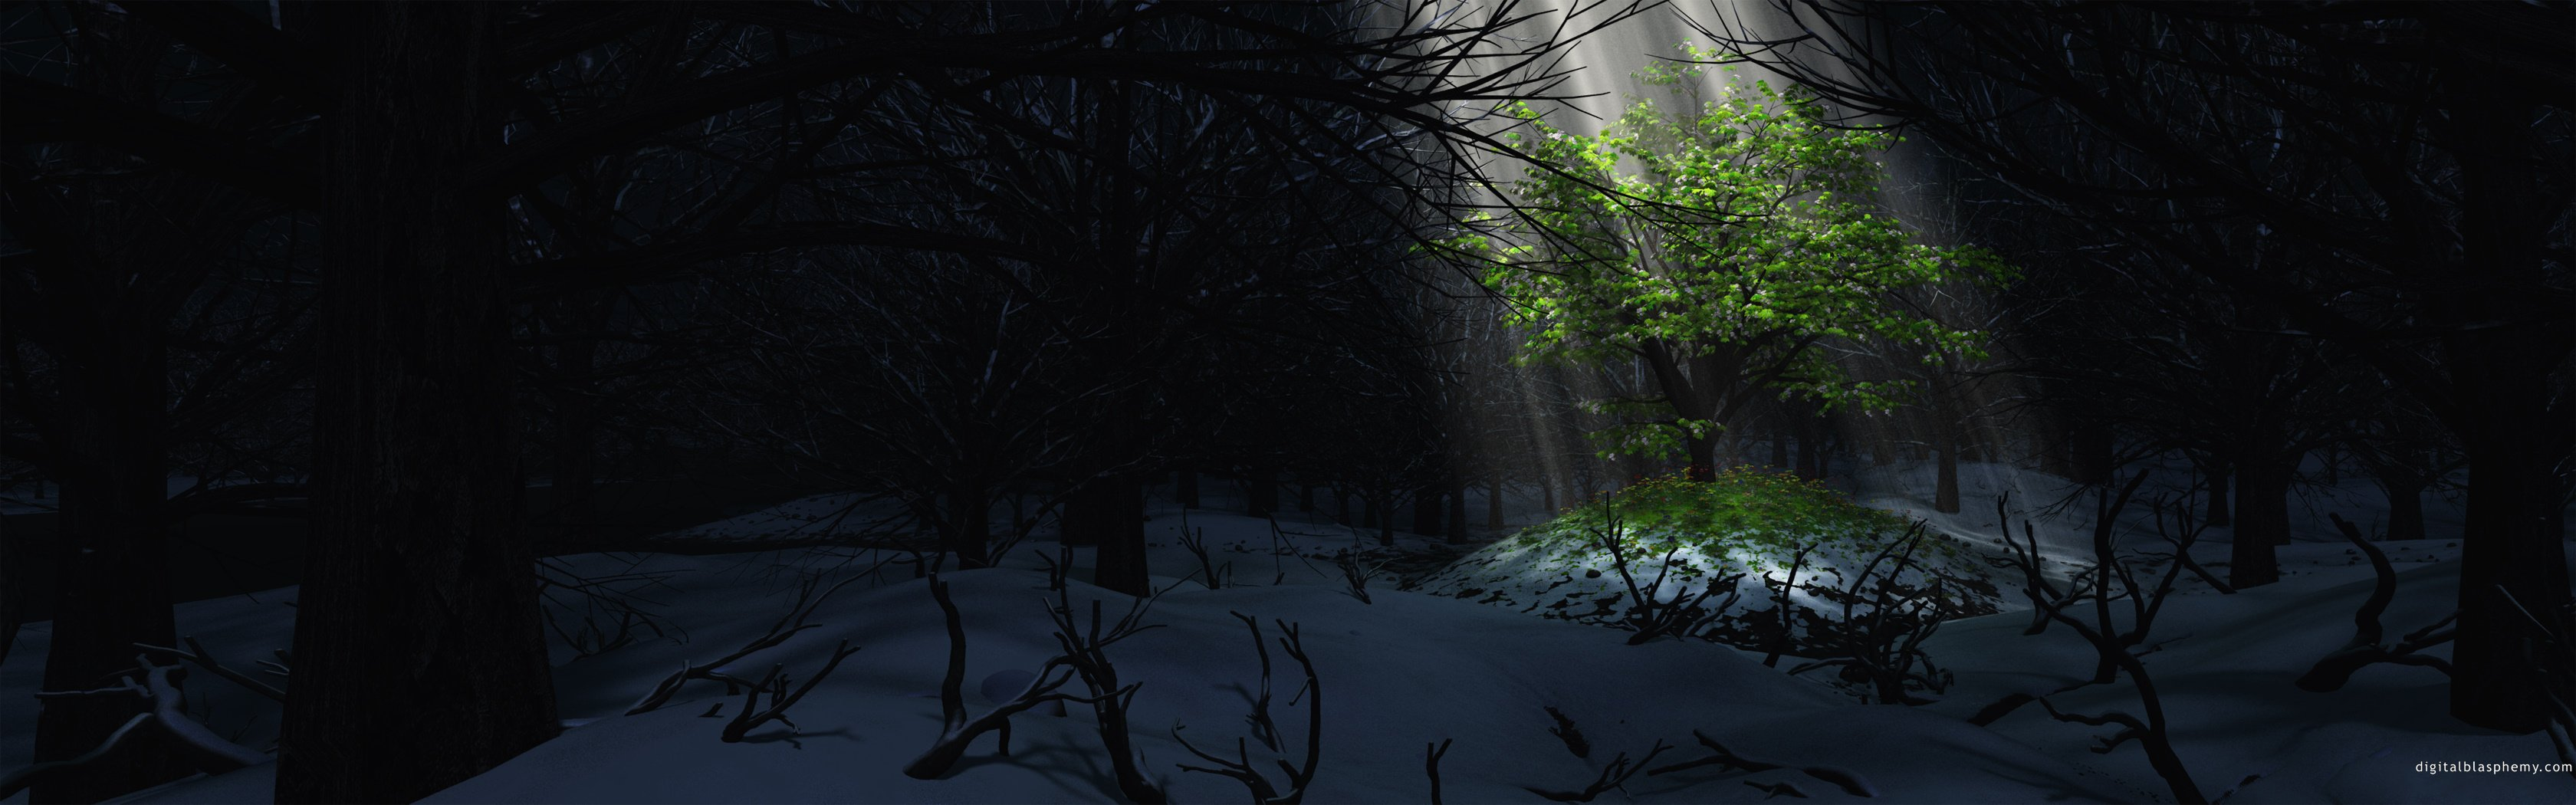 trees forests wallpaper 3360x1050 319437 wallpaperup